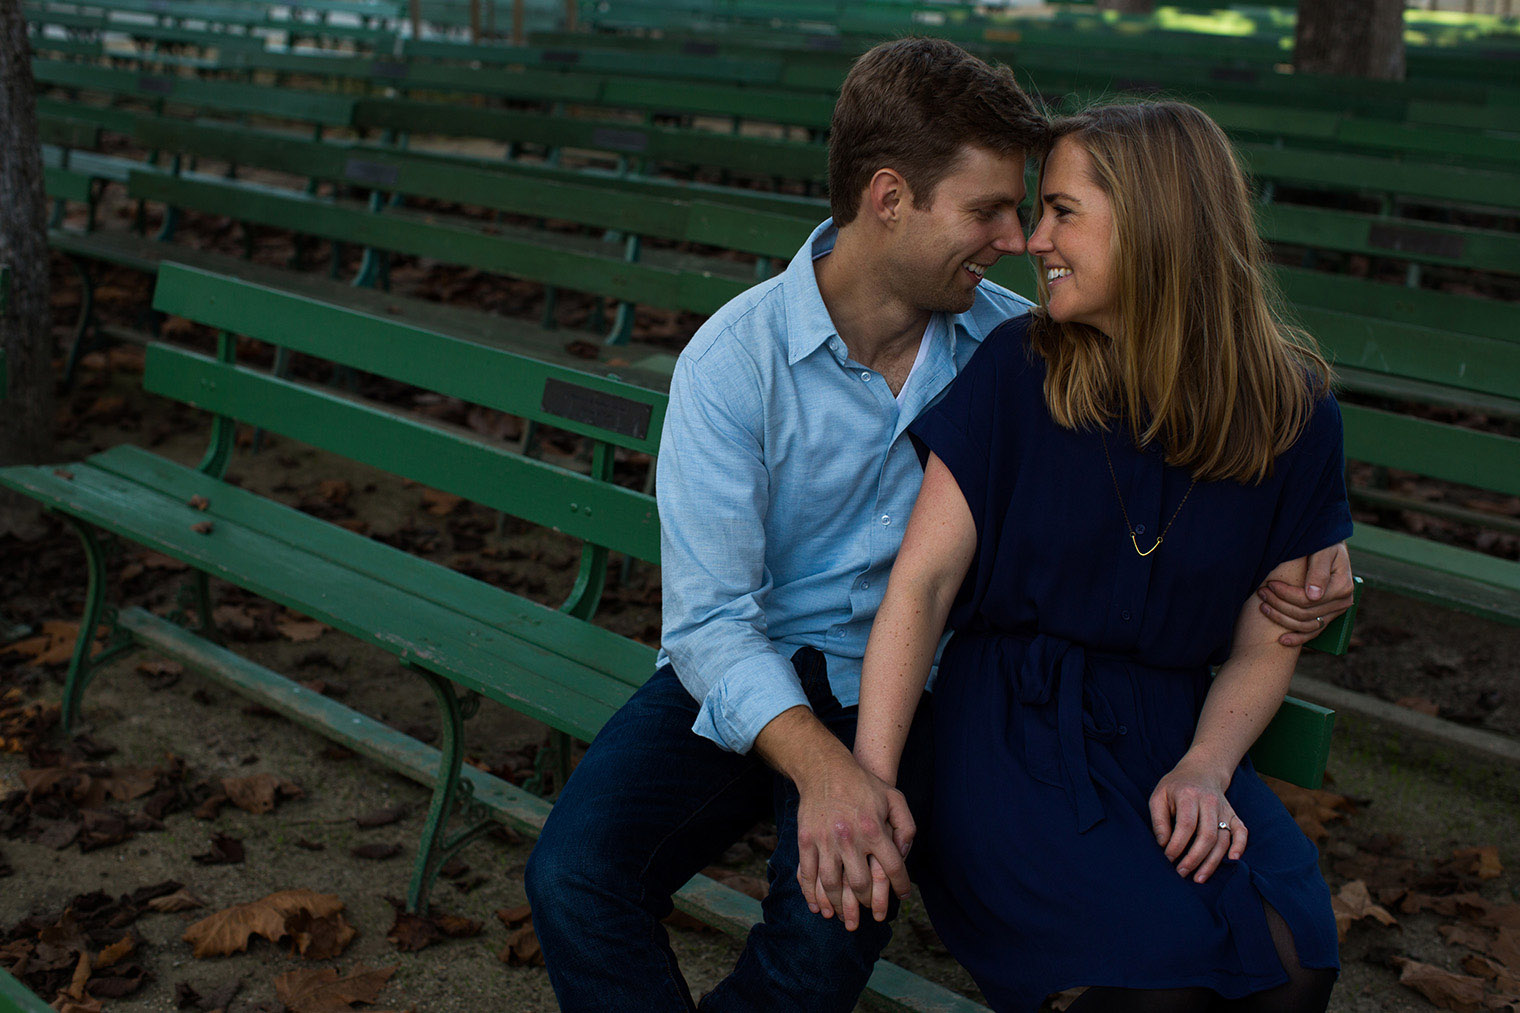 Best Locations for Engagement Photos in San Francisco